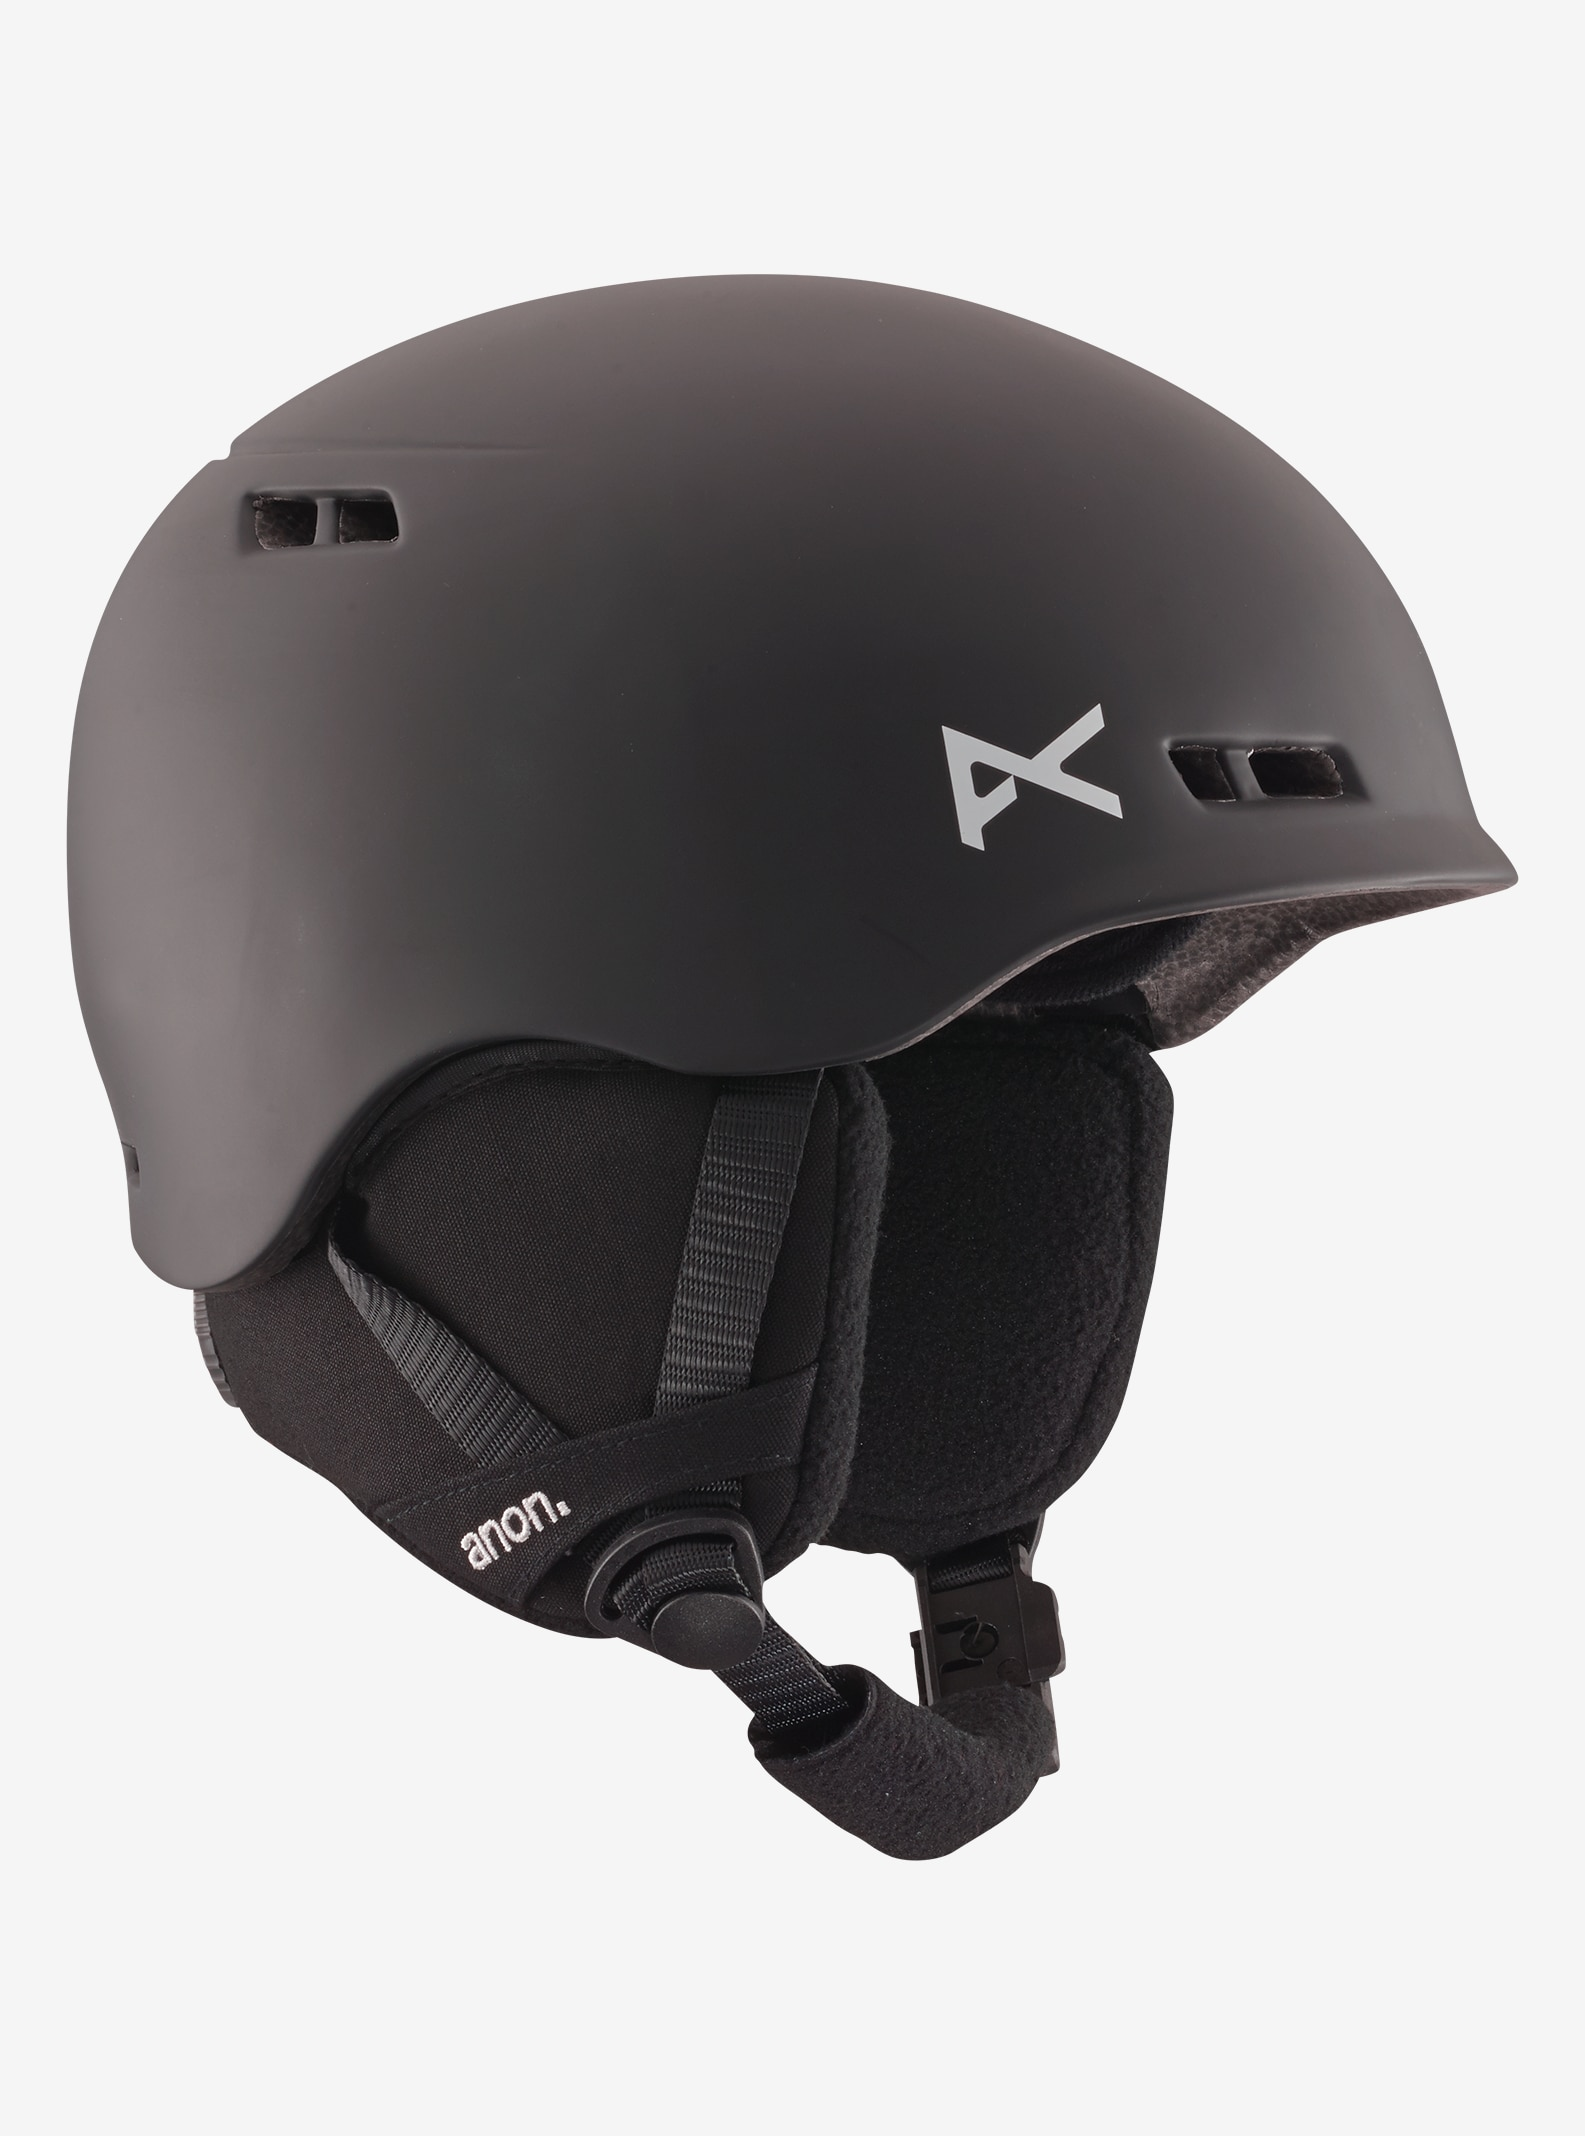 Kids' Anon Burner Helmet shown in Black